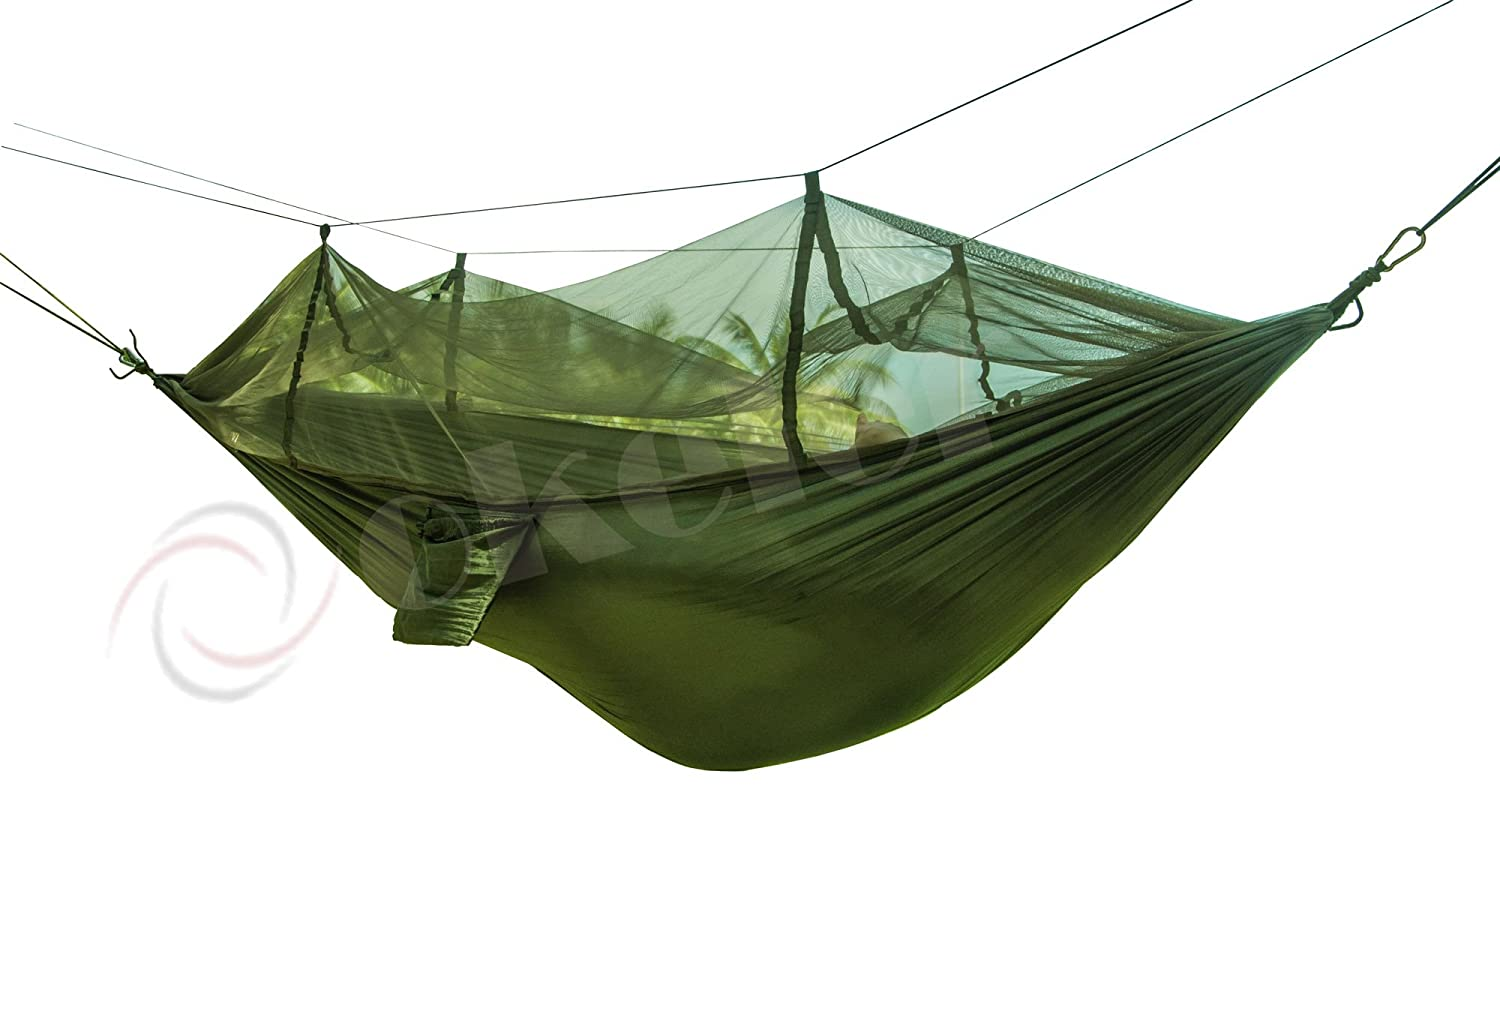 amazon    okeler portable nylon fabric travel camping hammock for double two person with free pen  army green with mosquito     garden  u0026 outdoor amazon    okeler portable nylon fabric travel camping hammock      rh   amazon